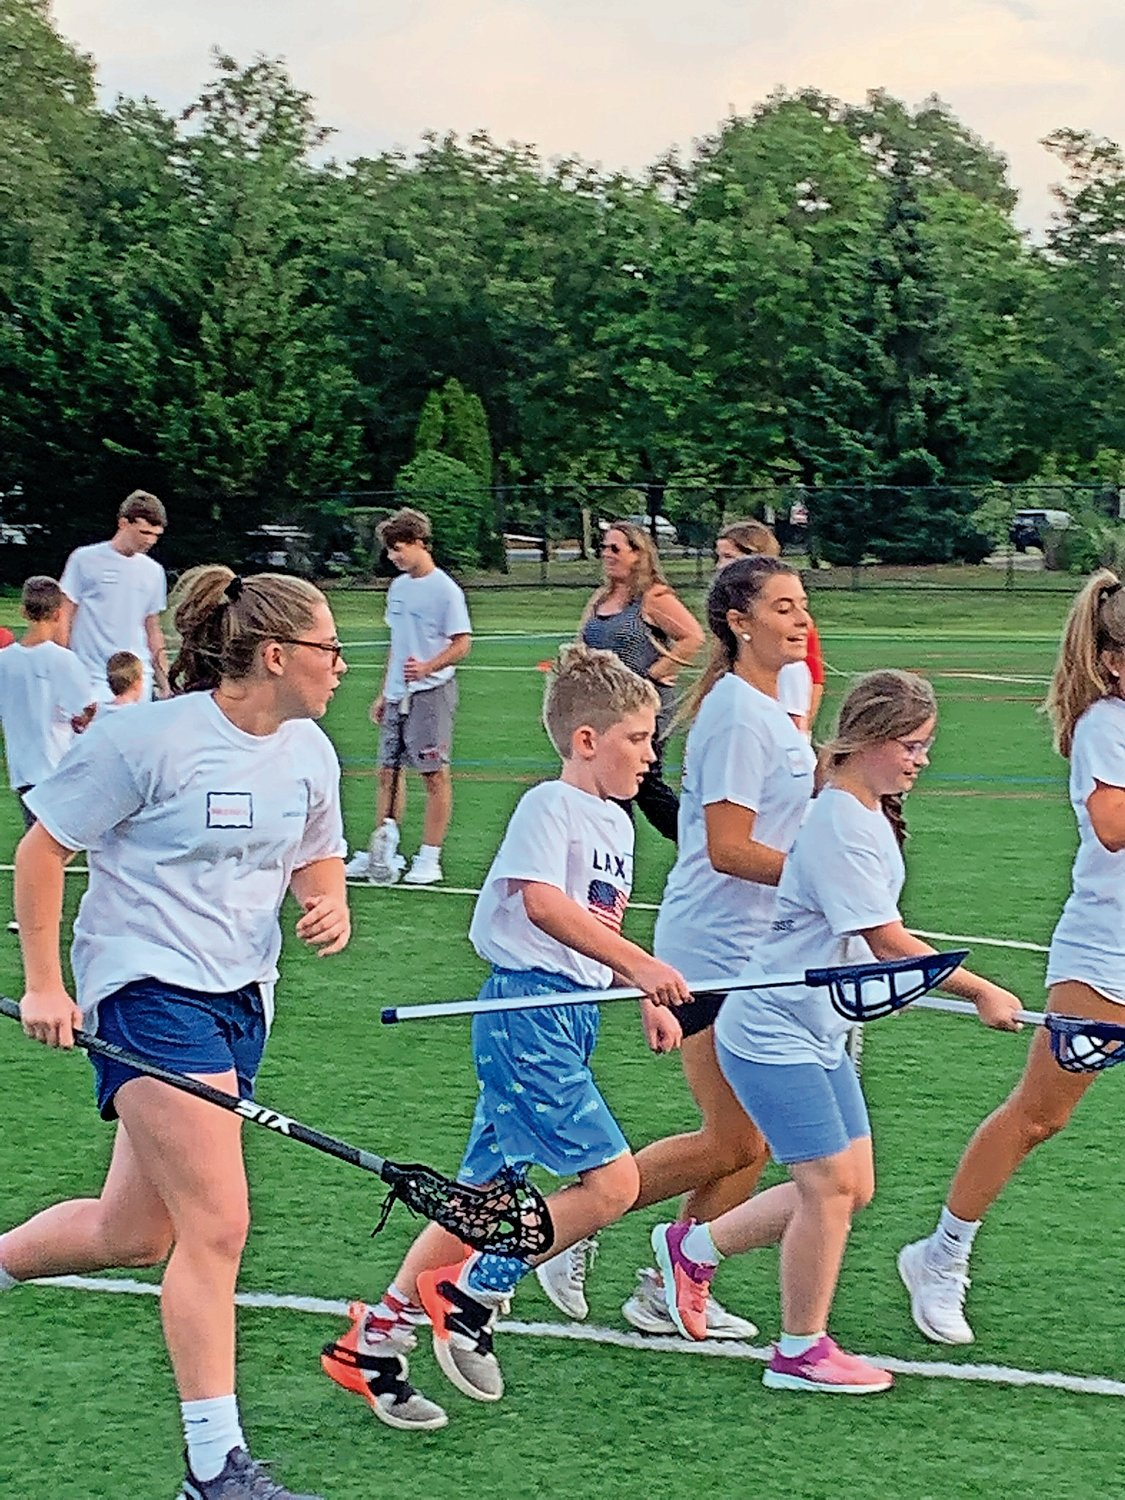 This summer, South Side High School lacrosse players organized a lacrosse clinic for children with special needs. They plan to hold another in September.